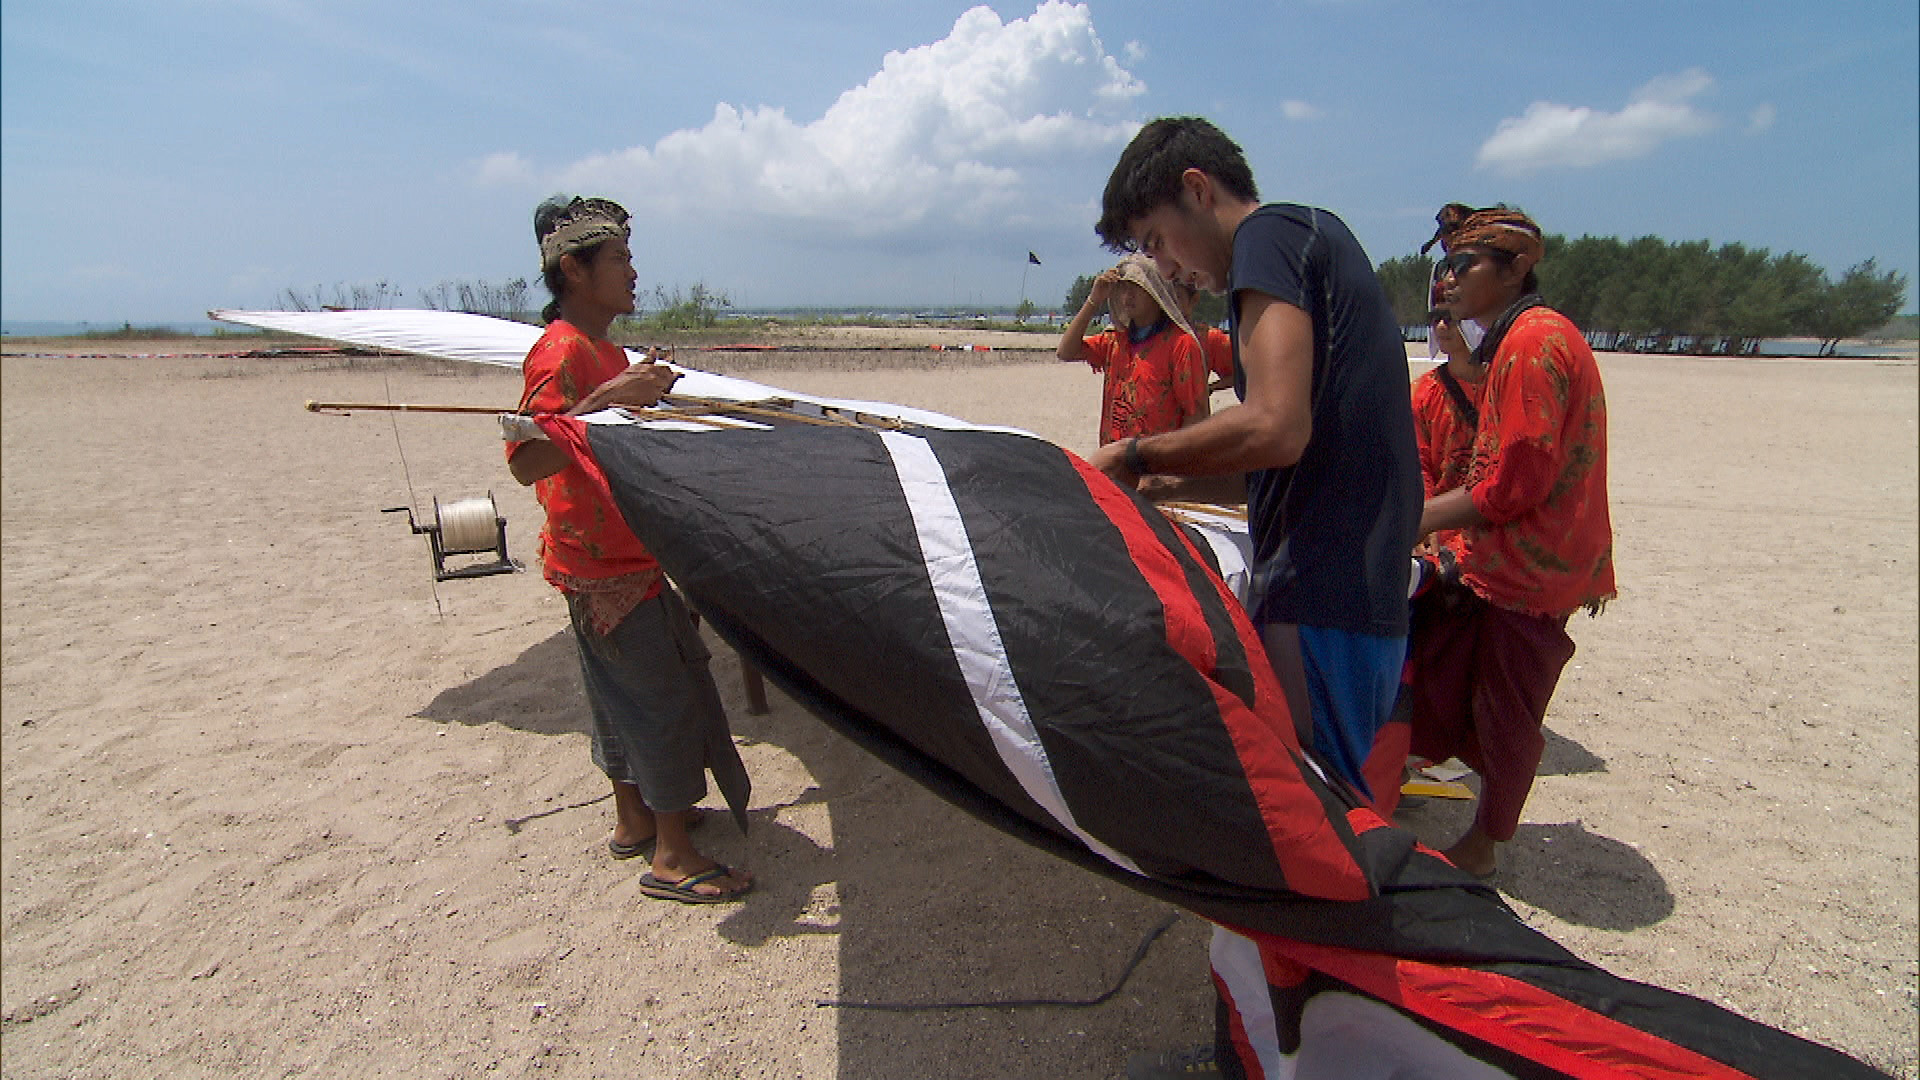 At the second Roadblock, Zach tries to help build and successfully fly a kite.